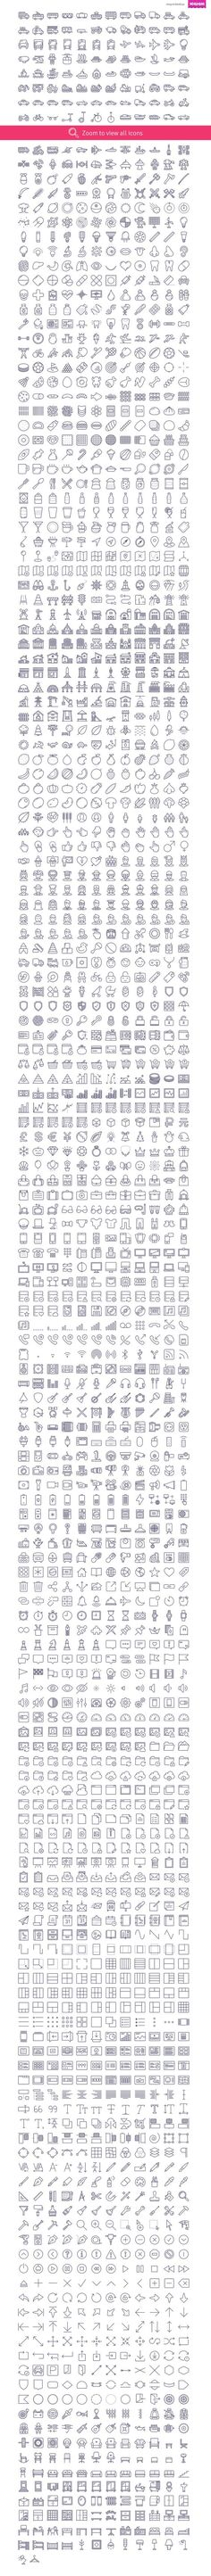 2090 icons in UniGrid set by Icojam on Creative Market. icojam, stroke, outline, ios, food, transport, military, buildings, devices, finance, tools, wireframe, music, people, baby, medicine, science, unigrid, christmas, interior: